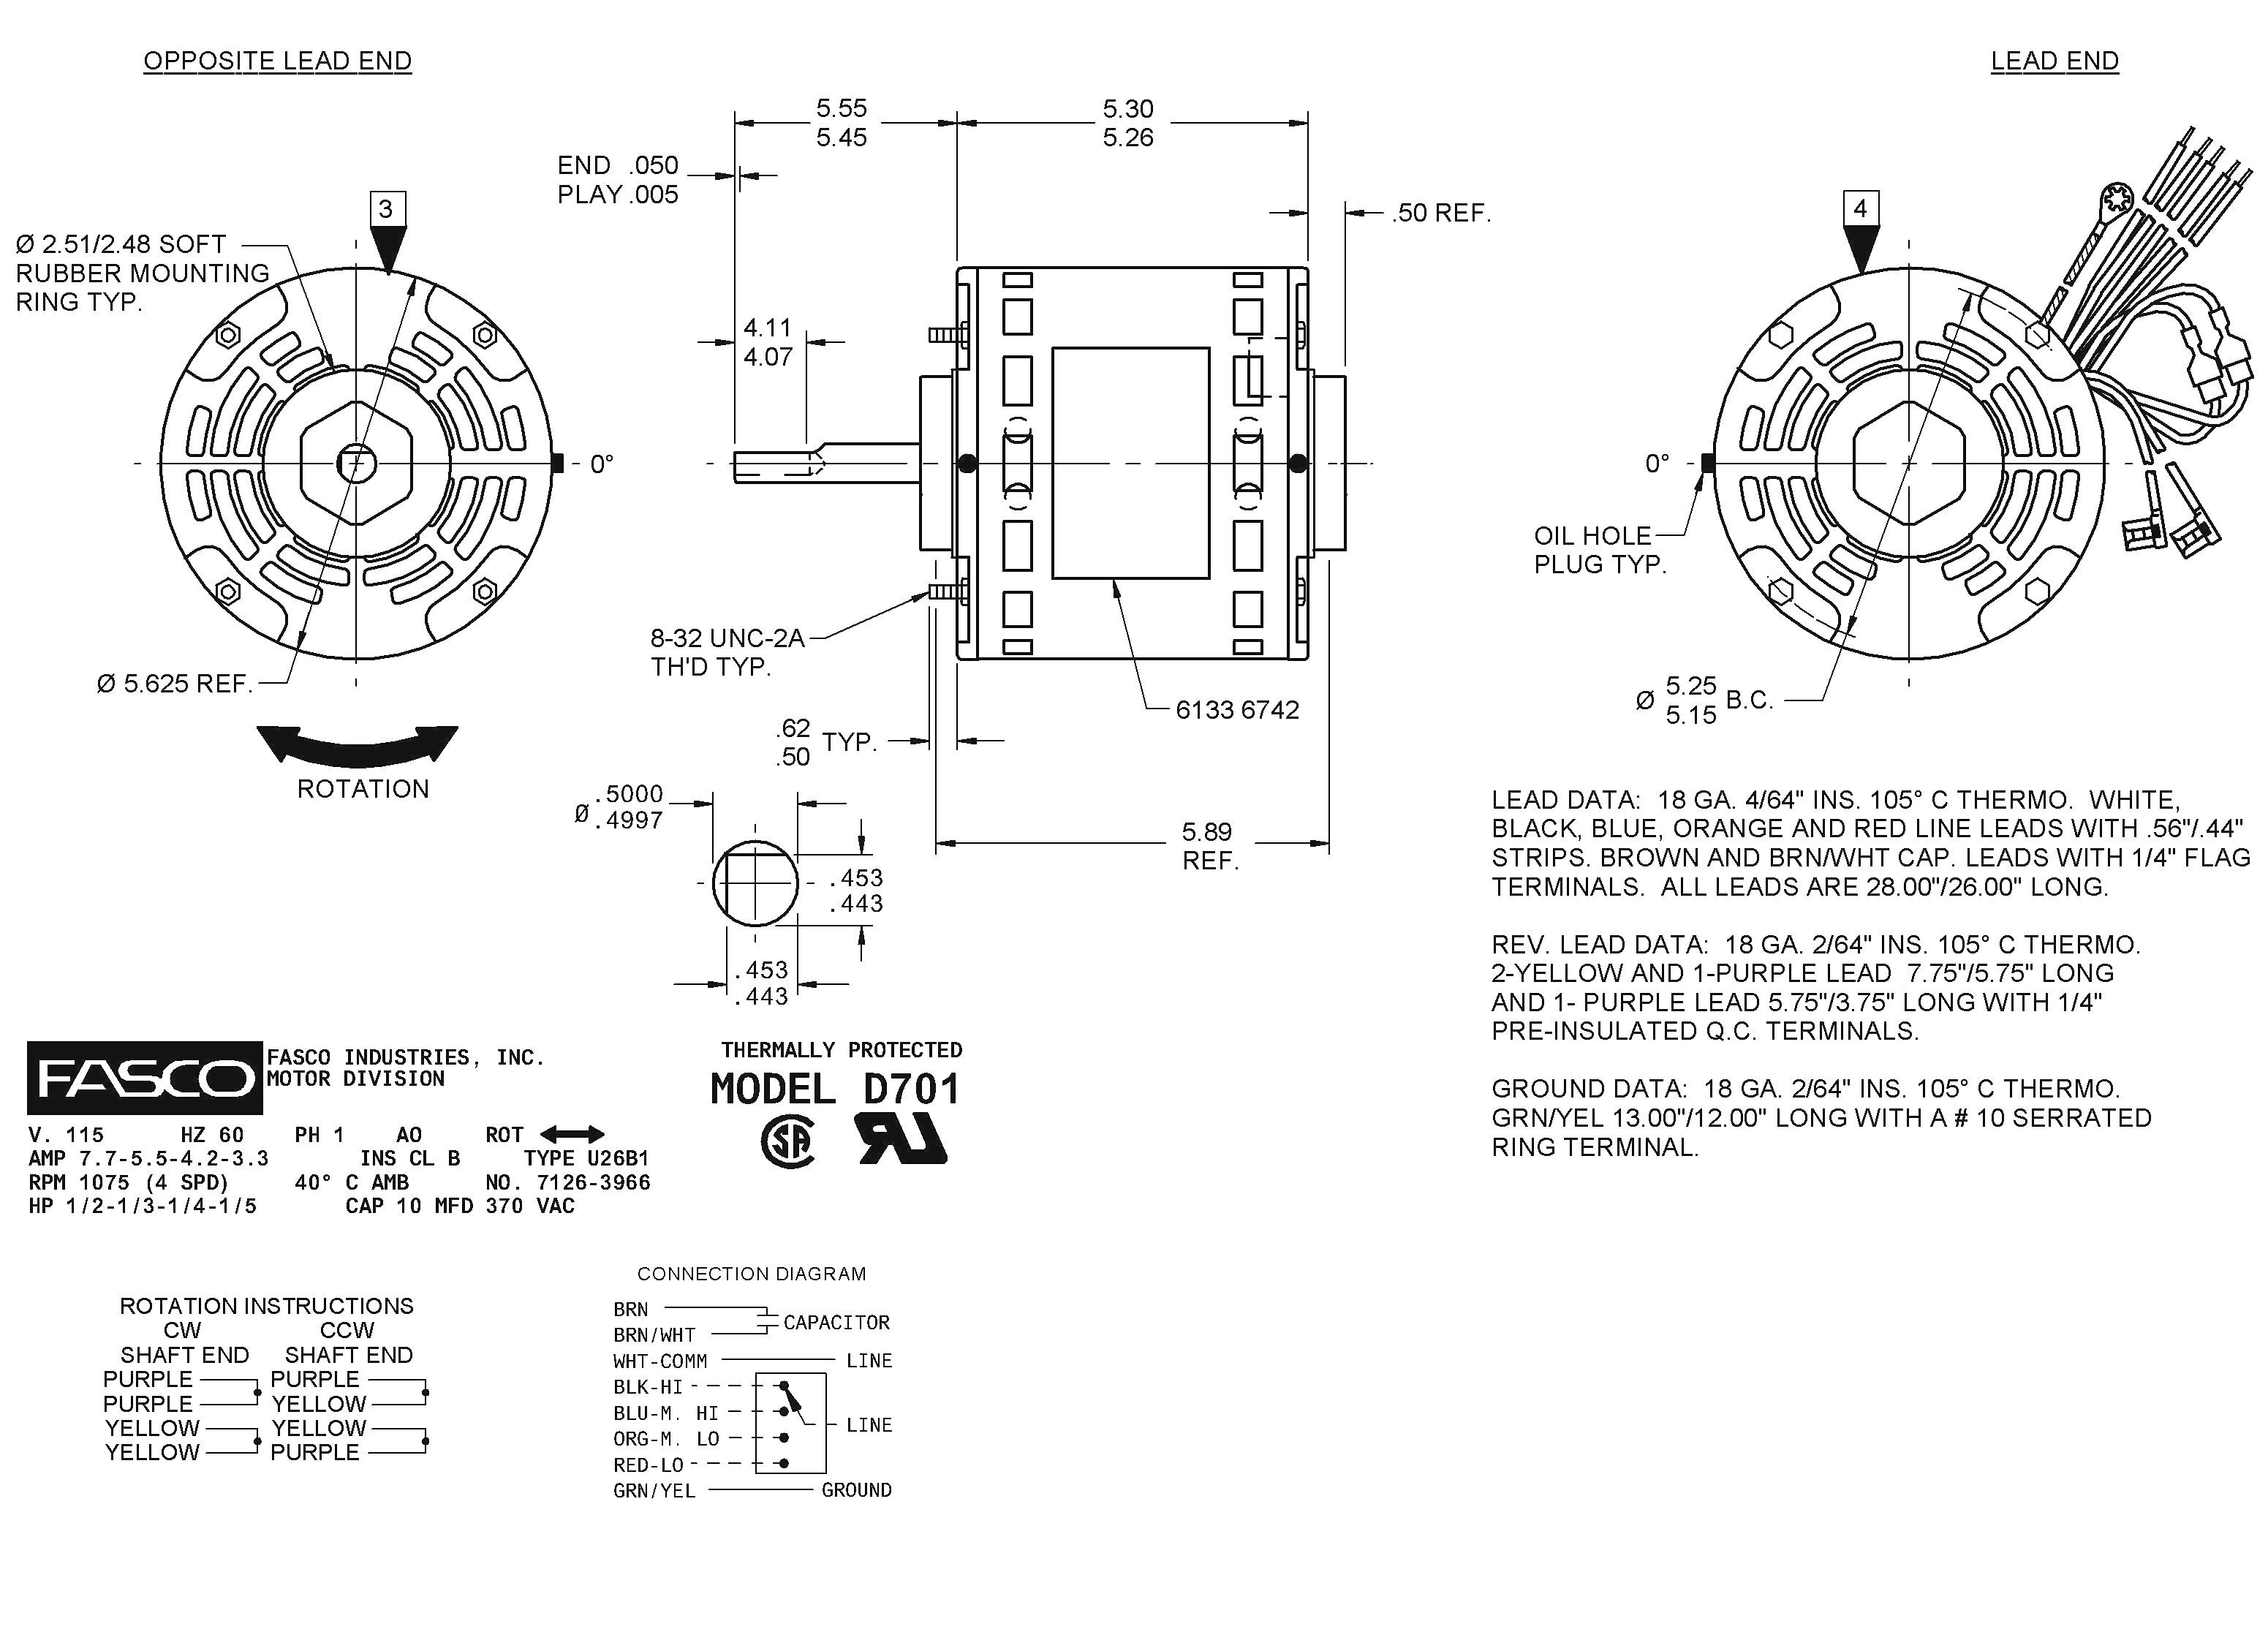 doerr single phase wiring diagram 230 480 single phase wiring diagram doerr motor cross reference - impremedia.net #9